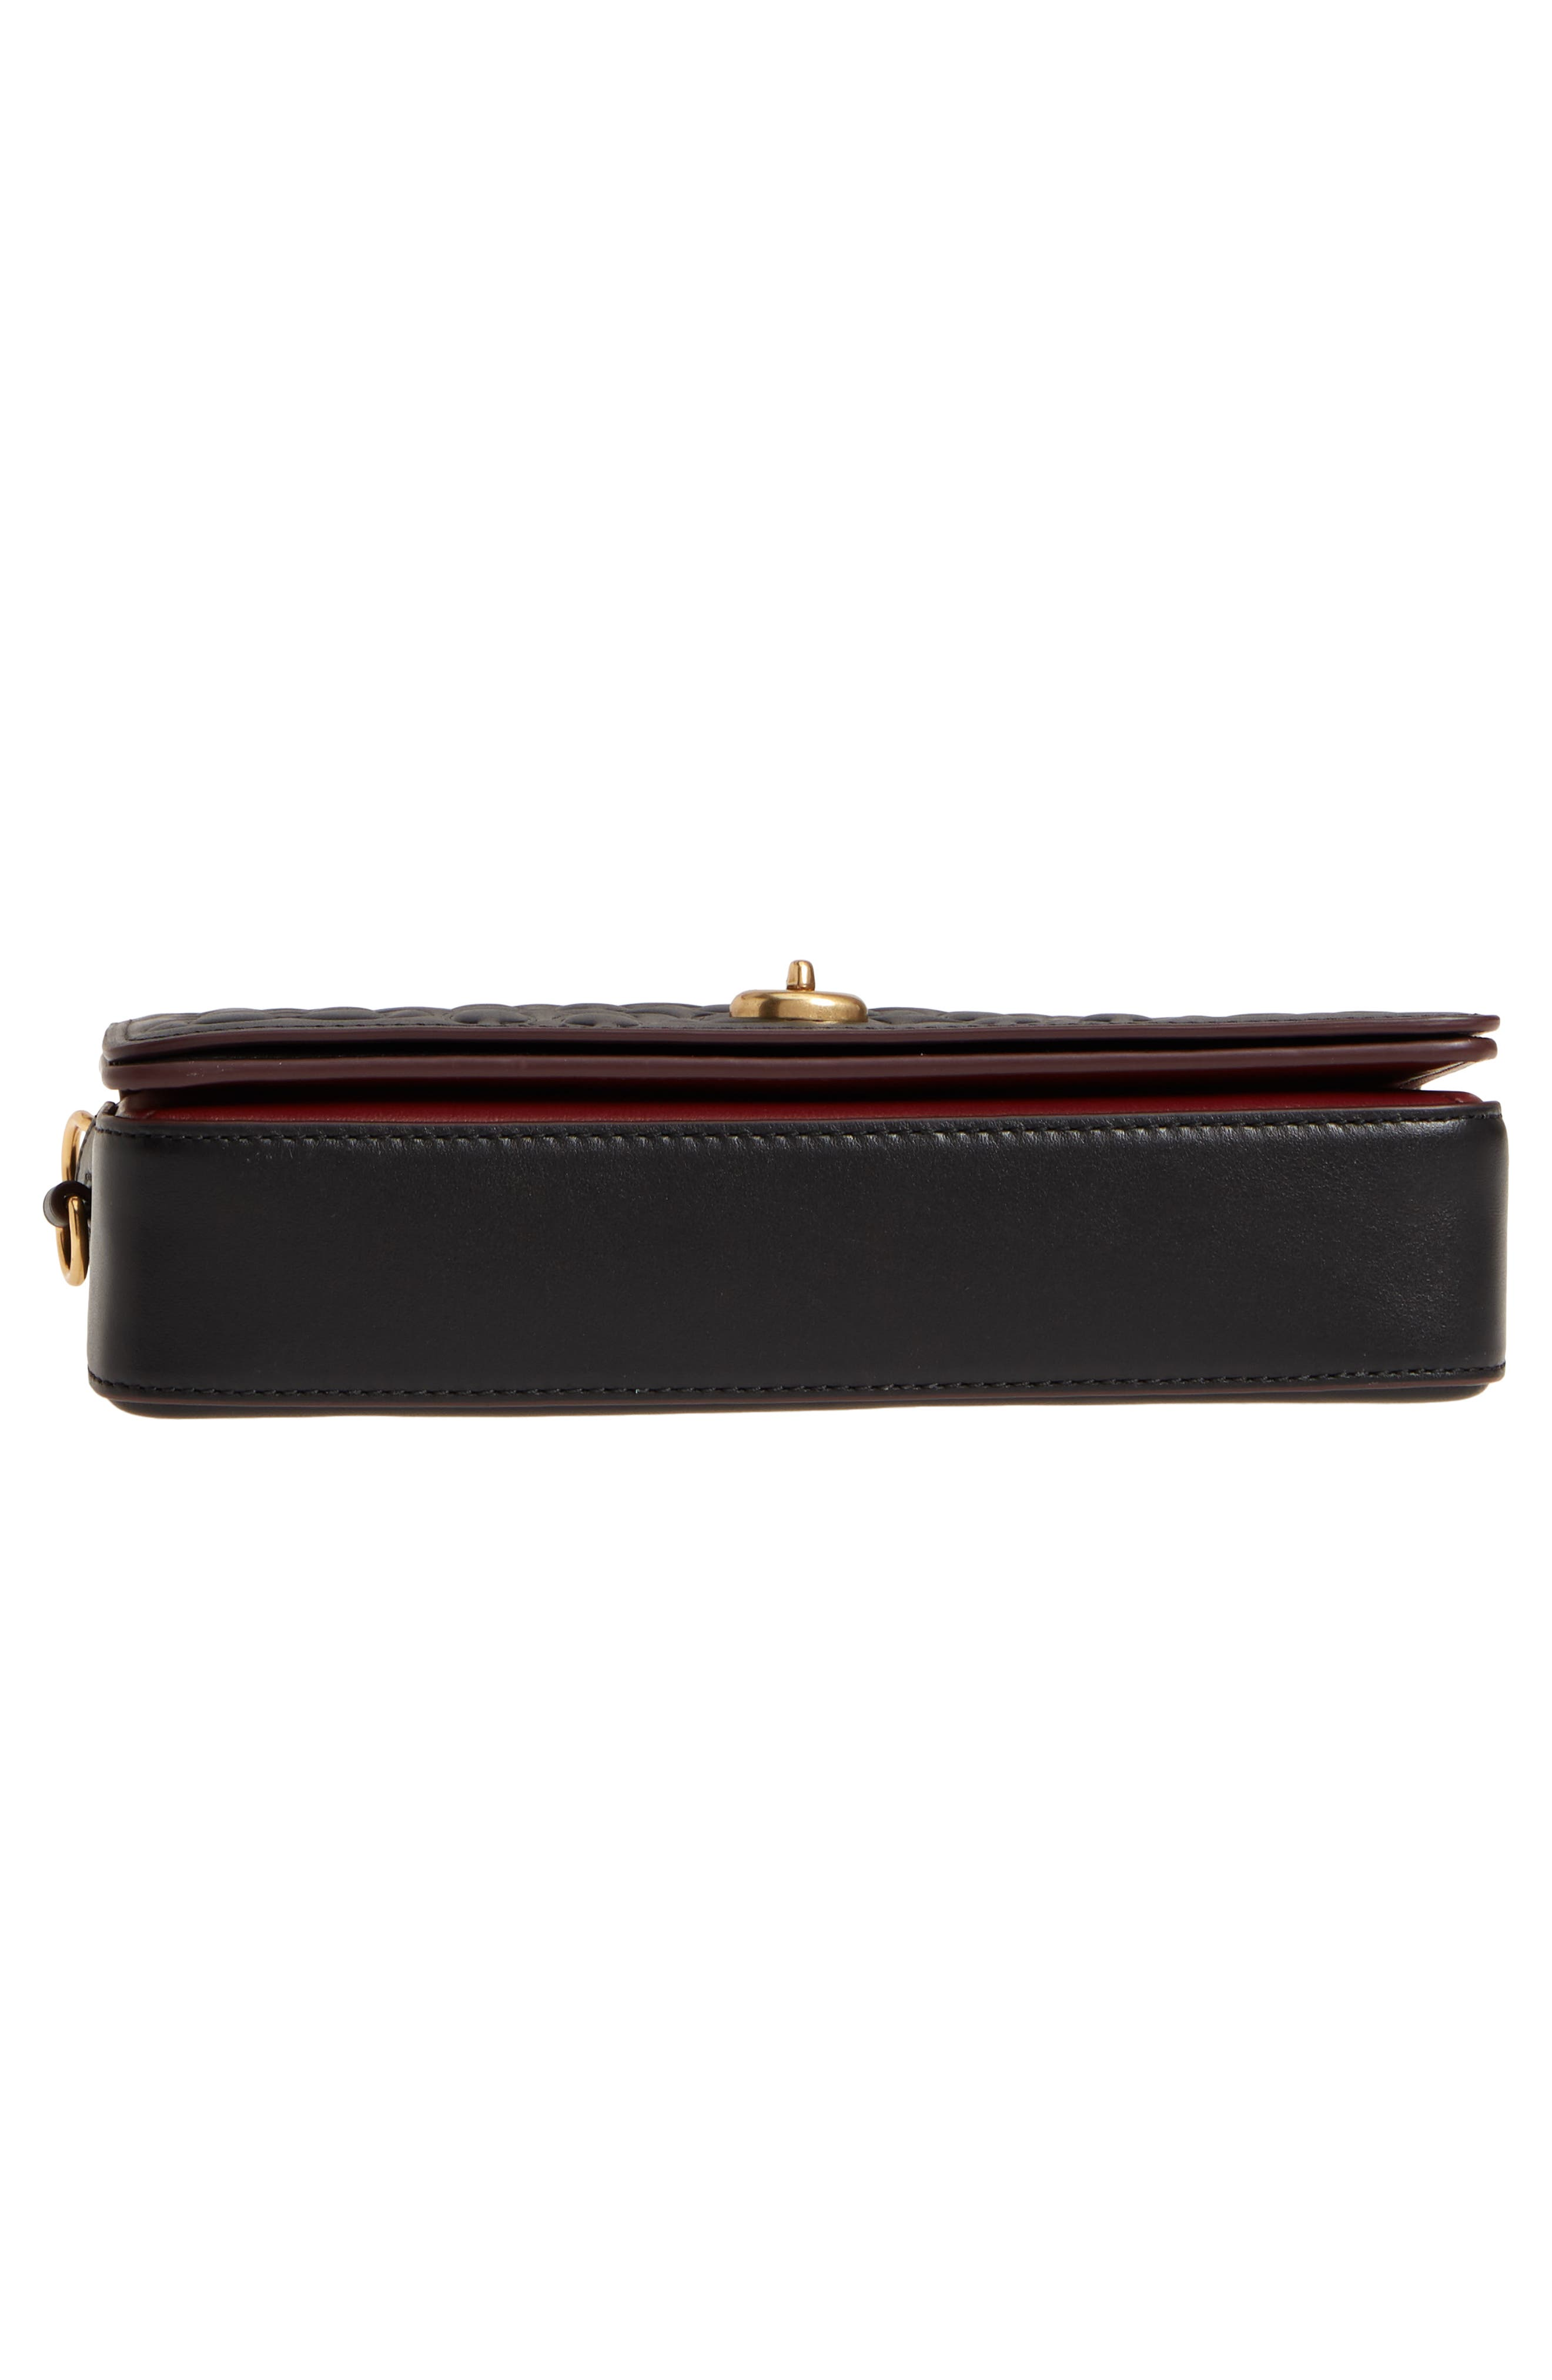 Logo Embossed Dinky Leather Crossbody Clutch,                             Alternate thumbnail 6, color,                             005